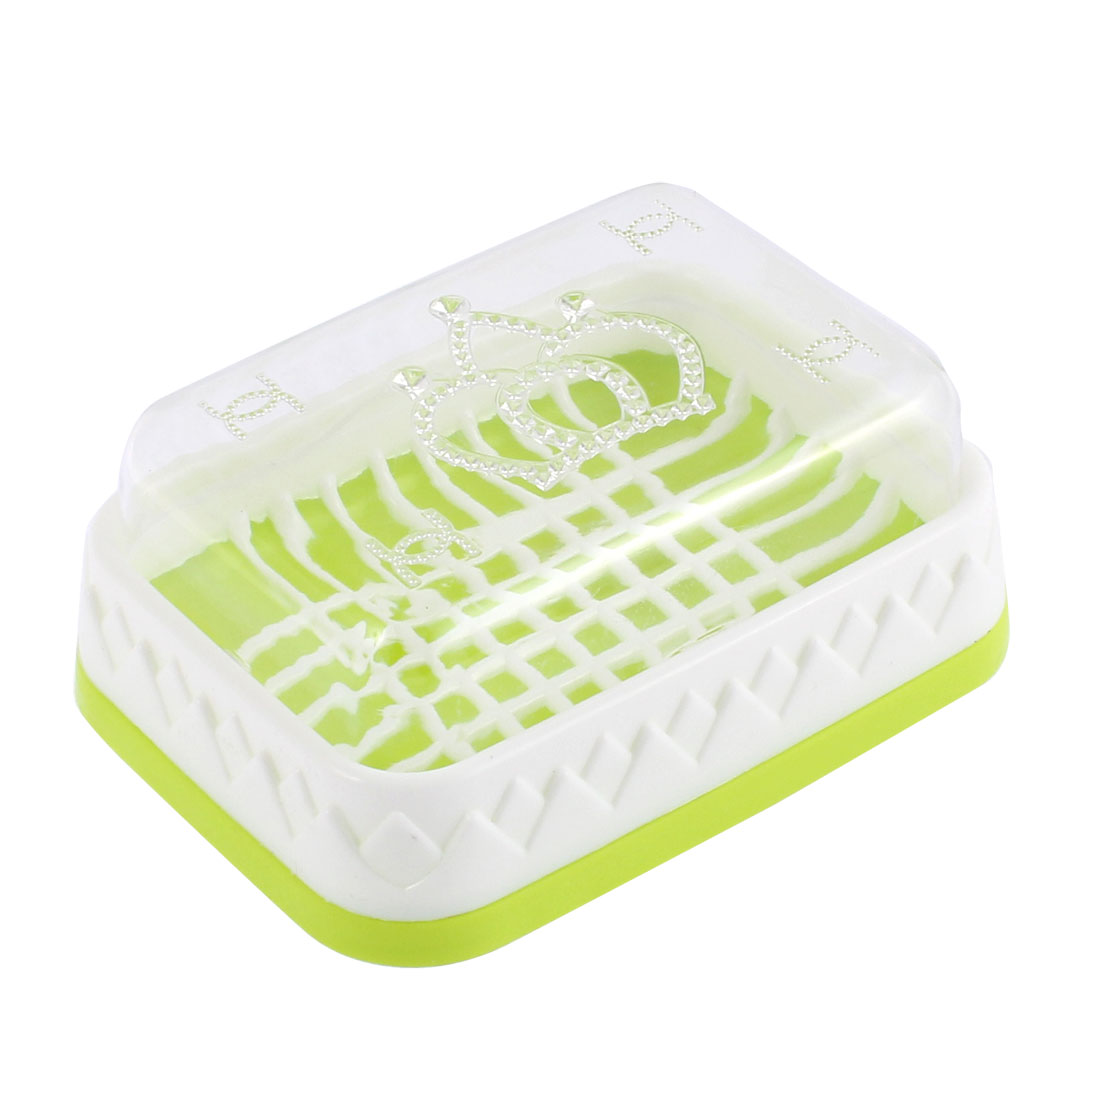 Bathroom Plastic Clear Cover Soap Box Container Light Green